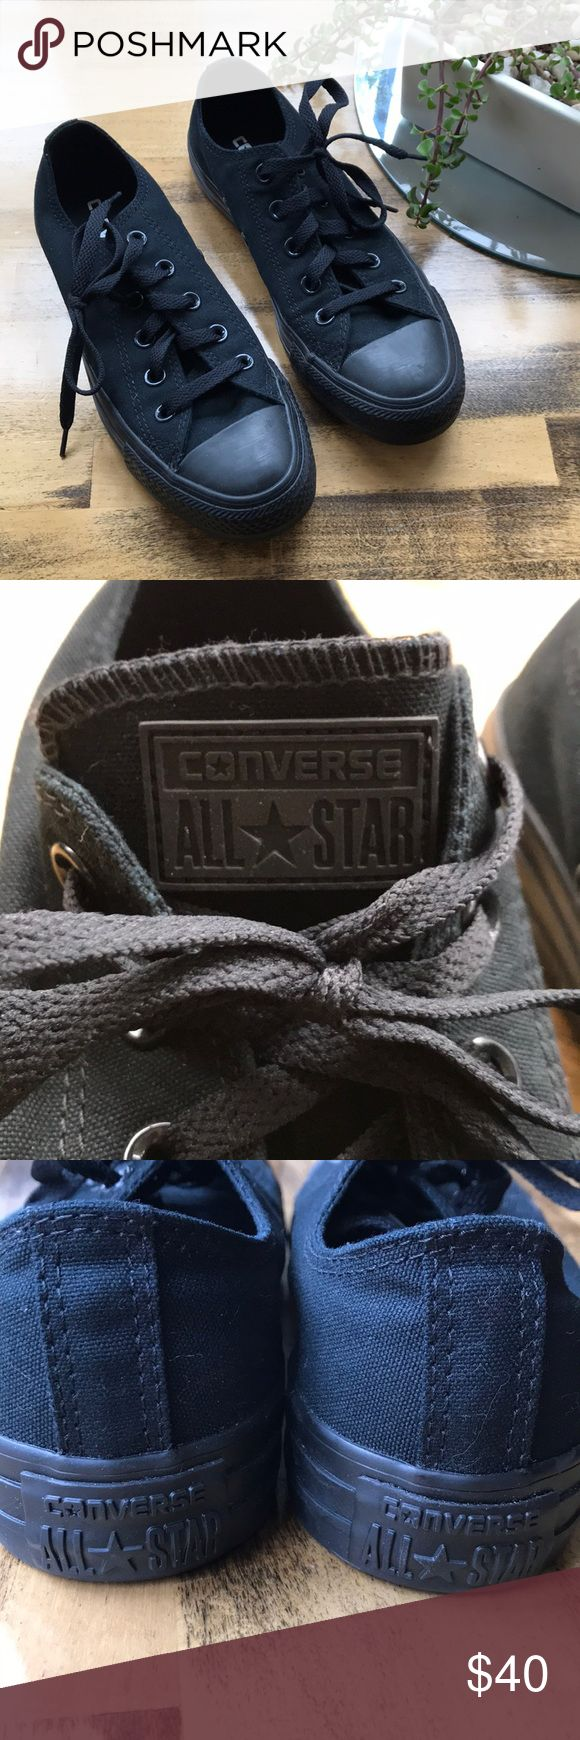 Brand new 👀 ALL black Converse Brand new ALL black Converse. Original box NOT available, but I do have a box from another pair that I can ship with the shoes. Size mens 4, women's 6. I purchased them to use for lifting weights in the gym, but I became ill a few months ago and haven't been able to do much of anything since. Converse Shoes Sneakers